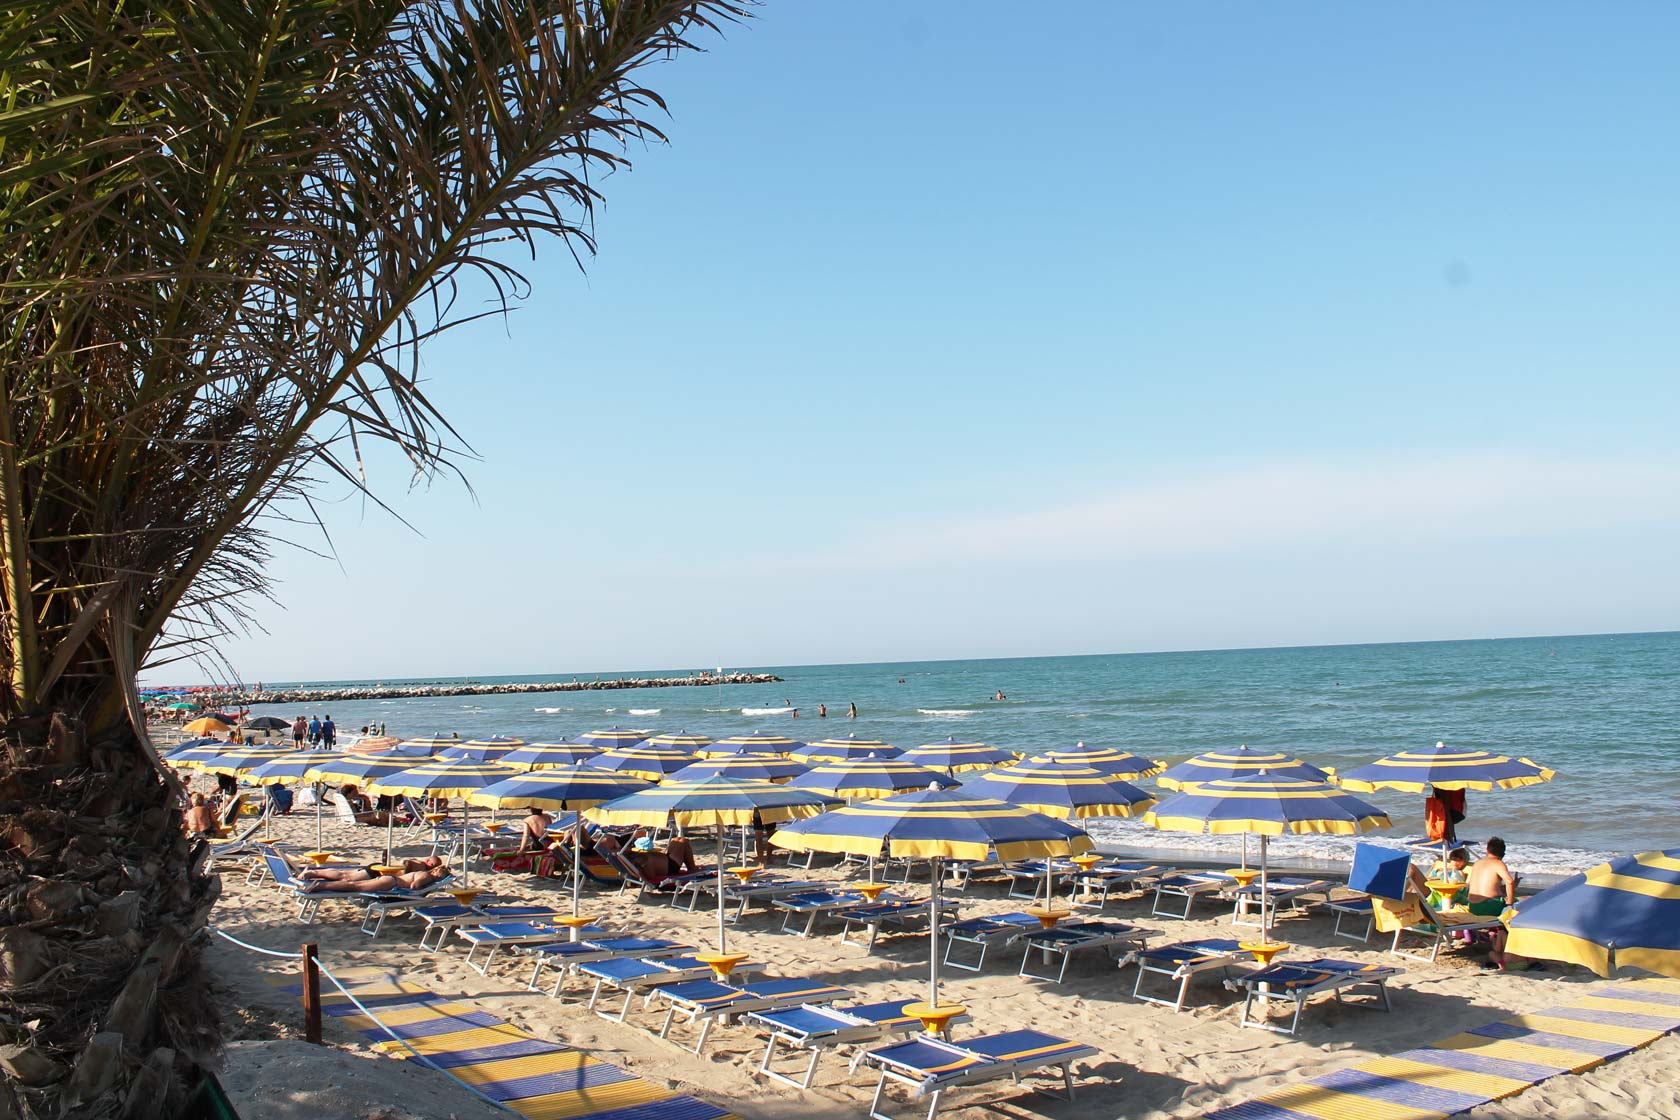 Hotel San Remo - The beach